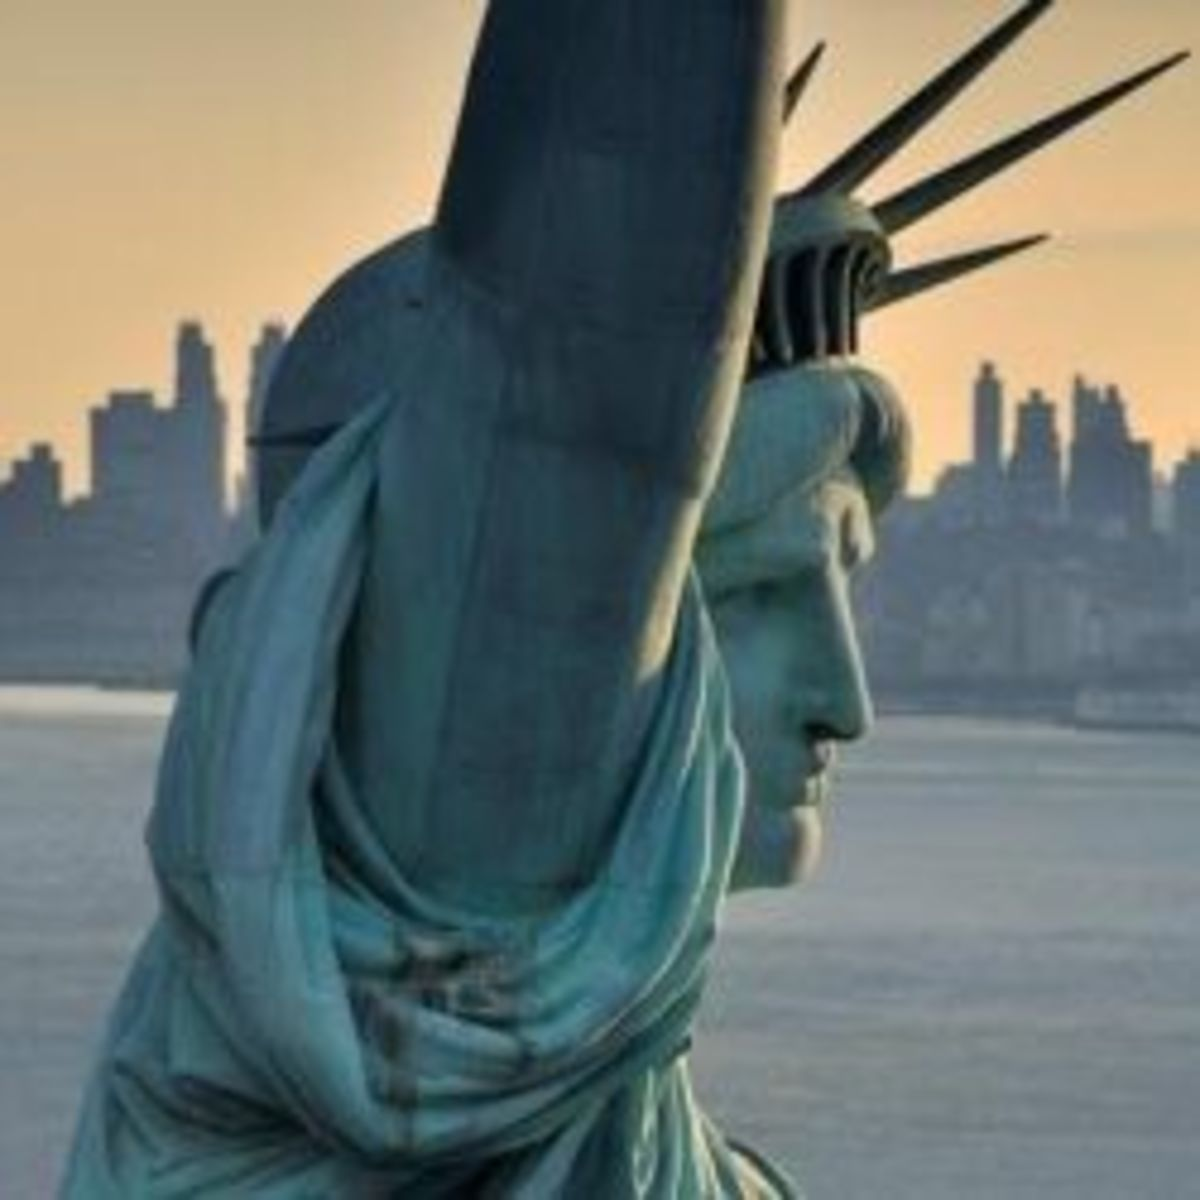 Image credit: http://www.history.com/topics/statue-of-liberty